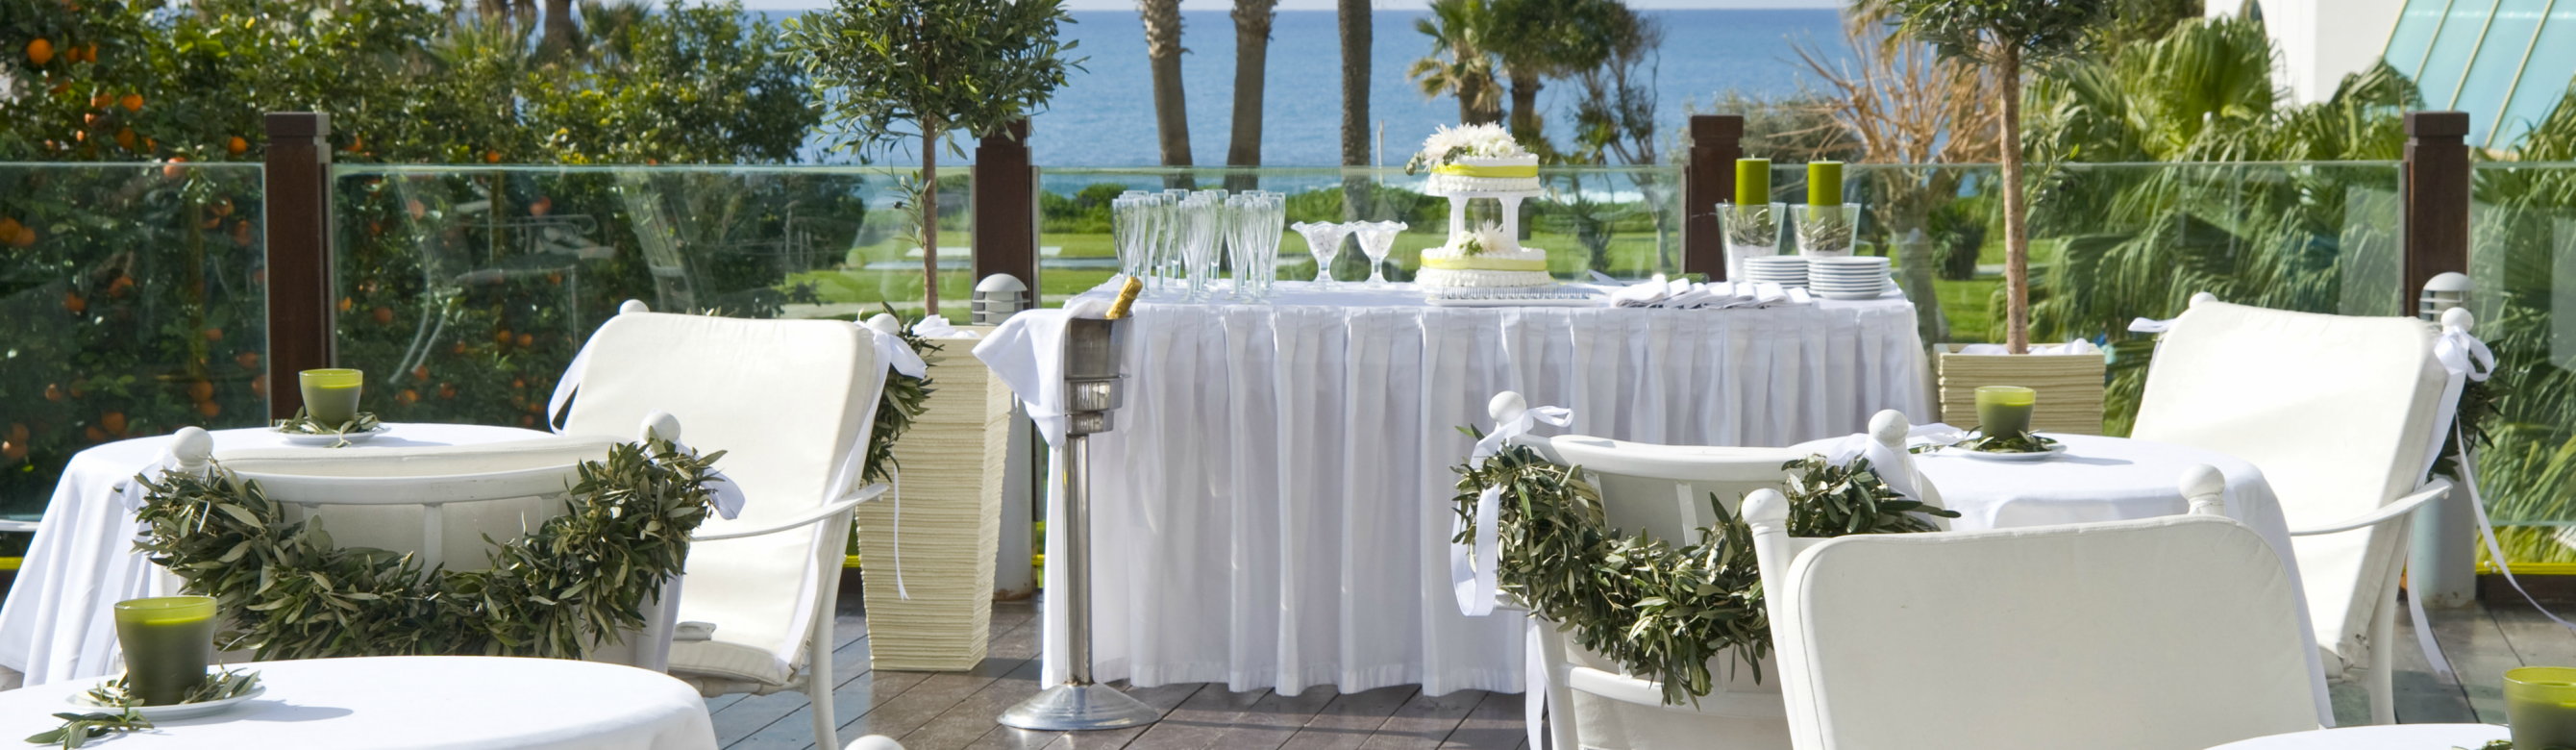 Louis_Imperial_Beach_-_Veranda_2.png